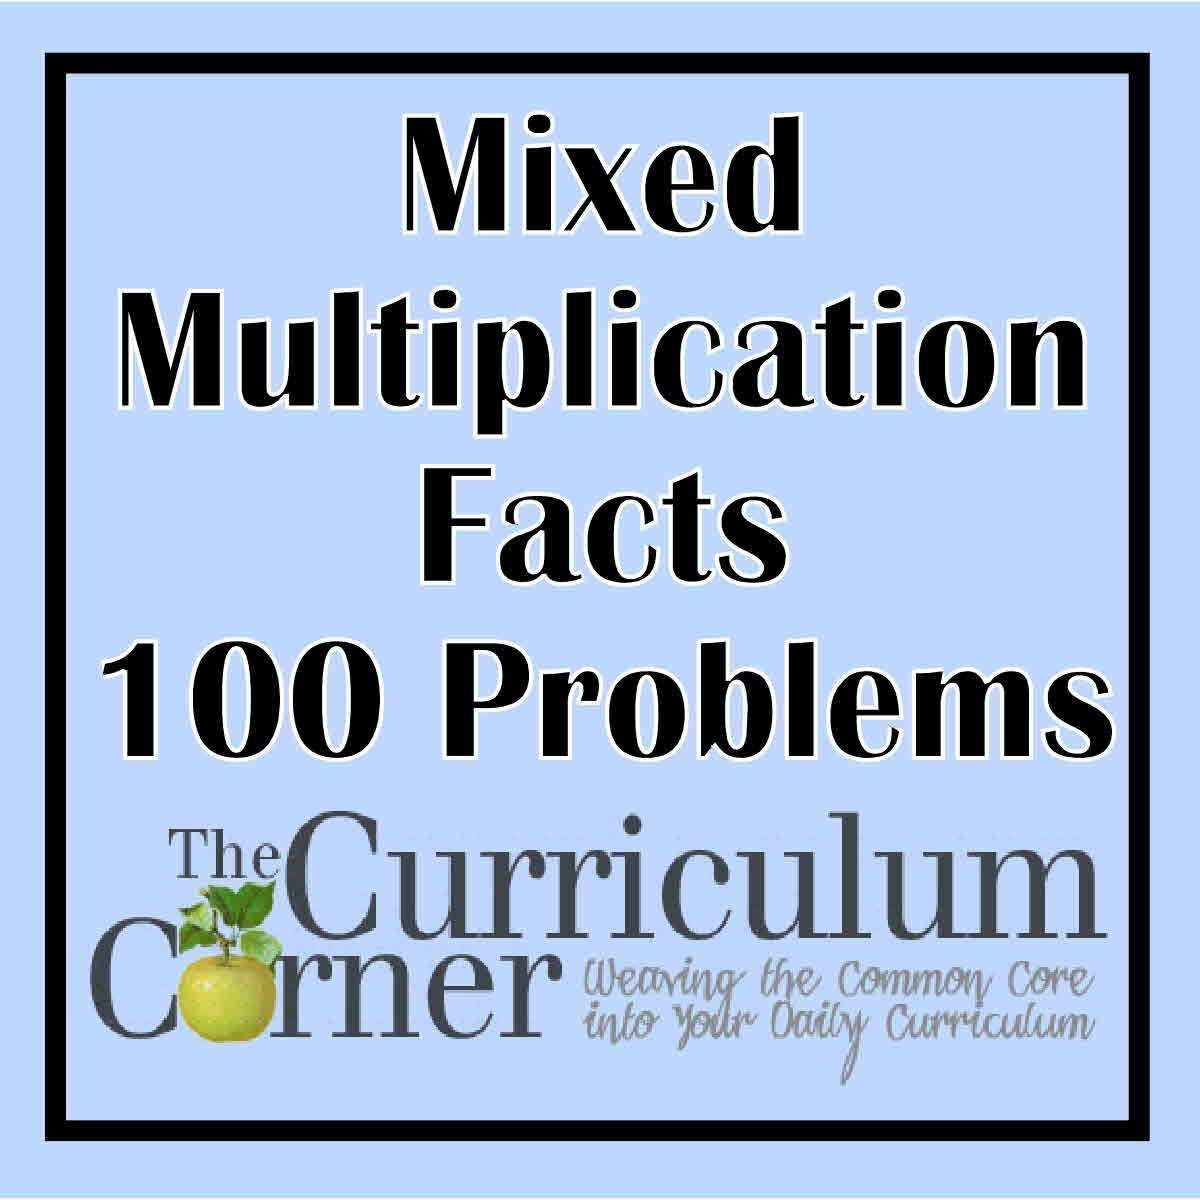 Mixed Multiplication Facts 100 Problems - The Curriculum Corner 123 - Free Printable Multiplication Worksheets 100 Problems